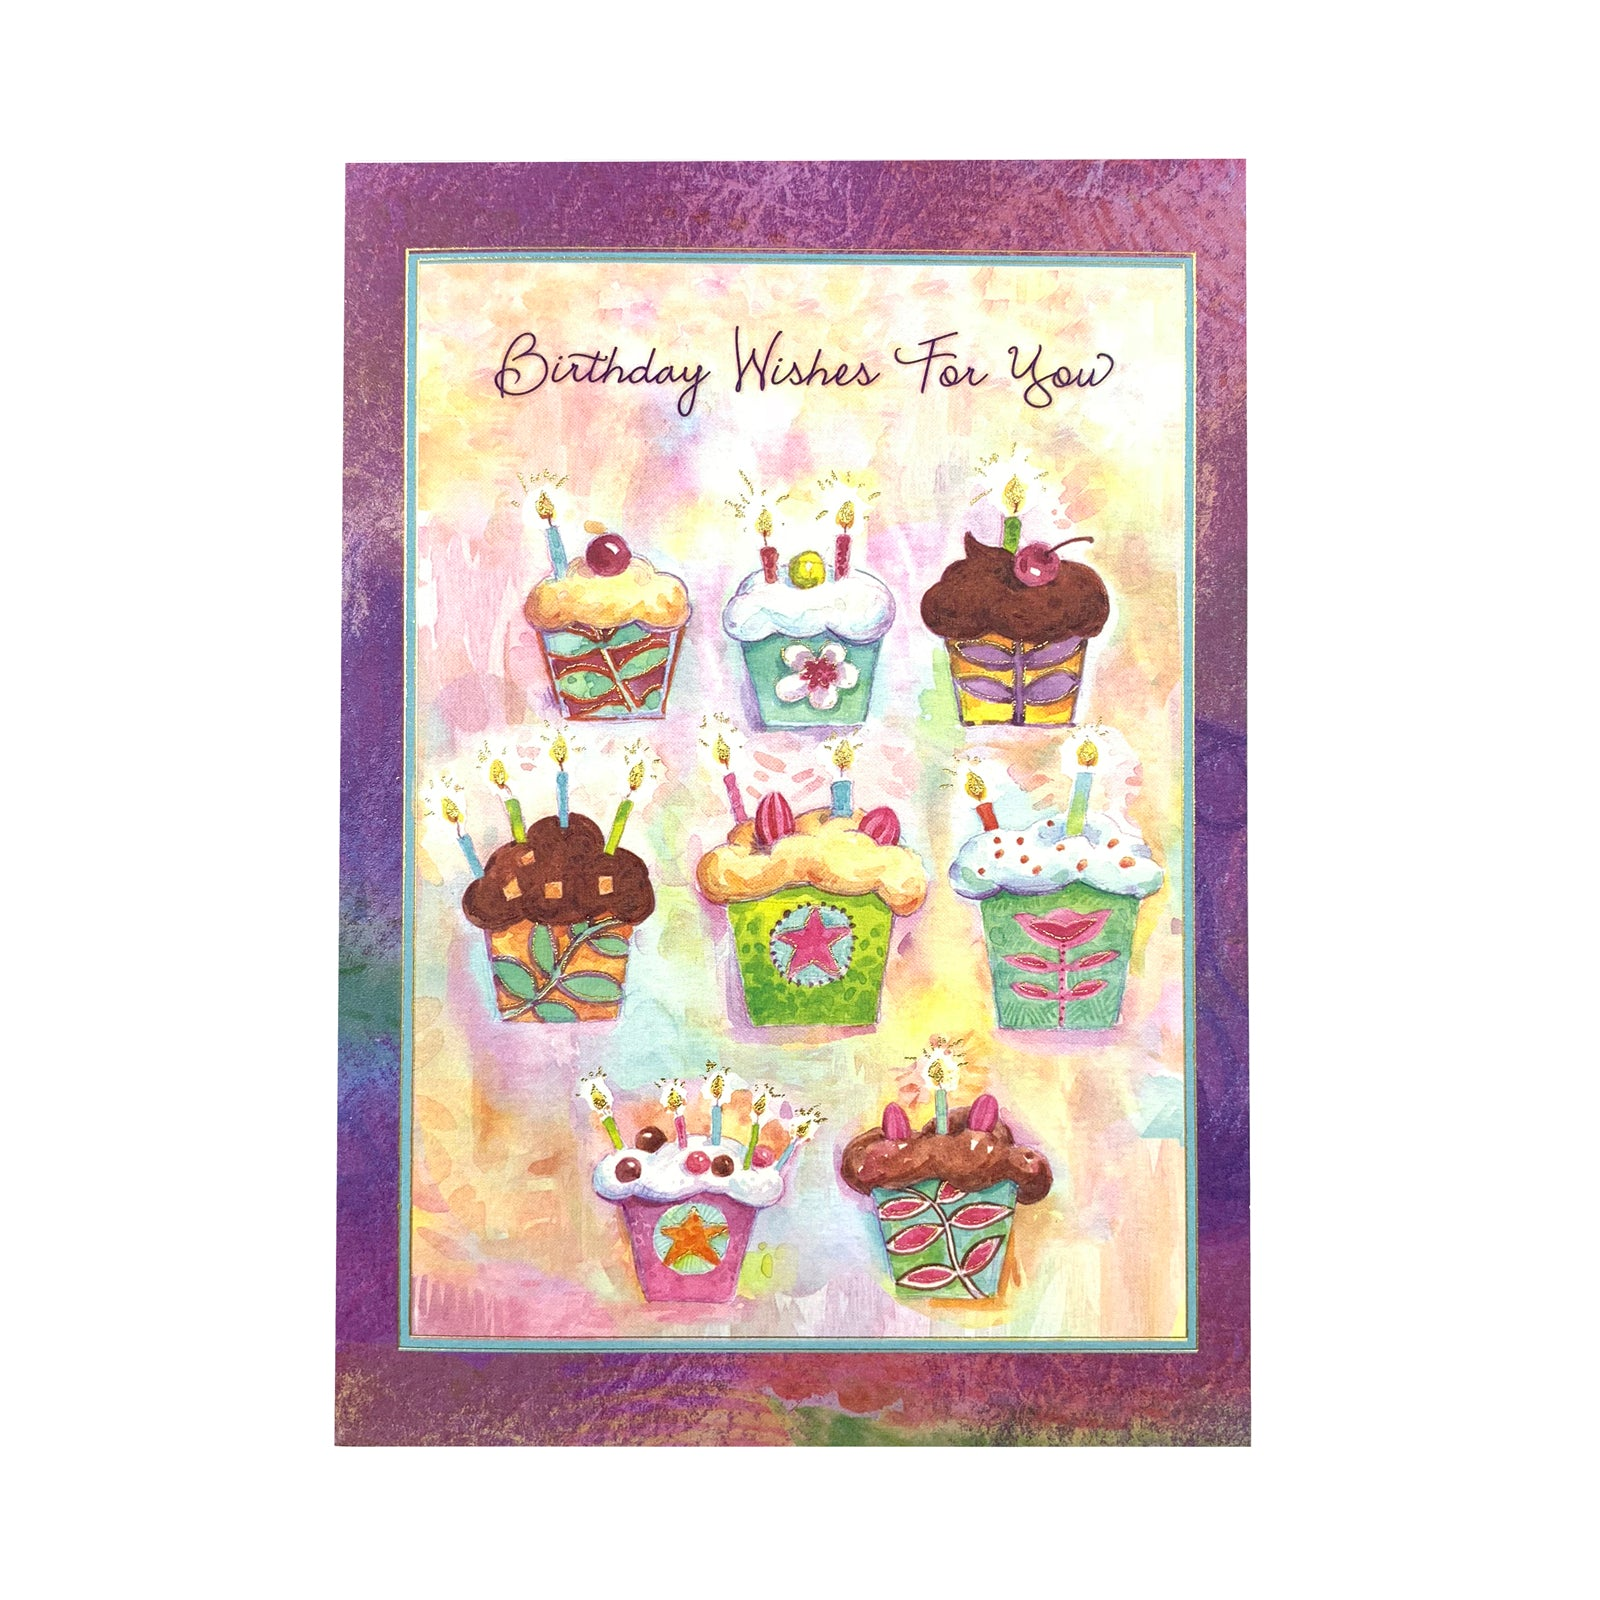 Designer Greetings Birthday Card - Birthday Wishes For You Cupcakes